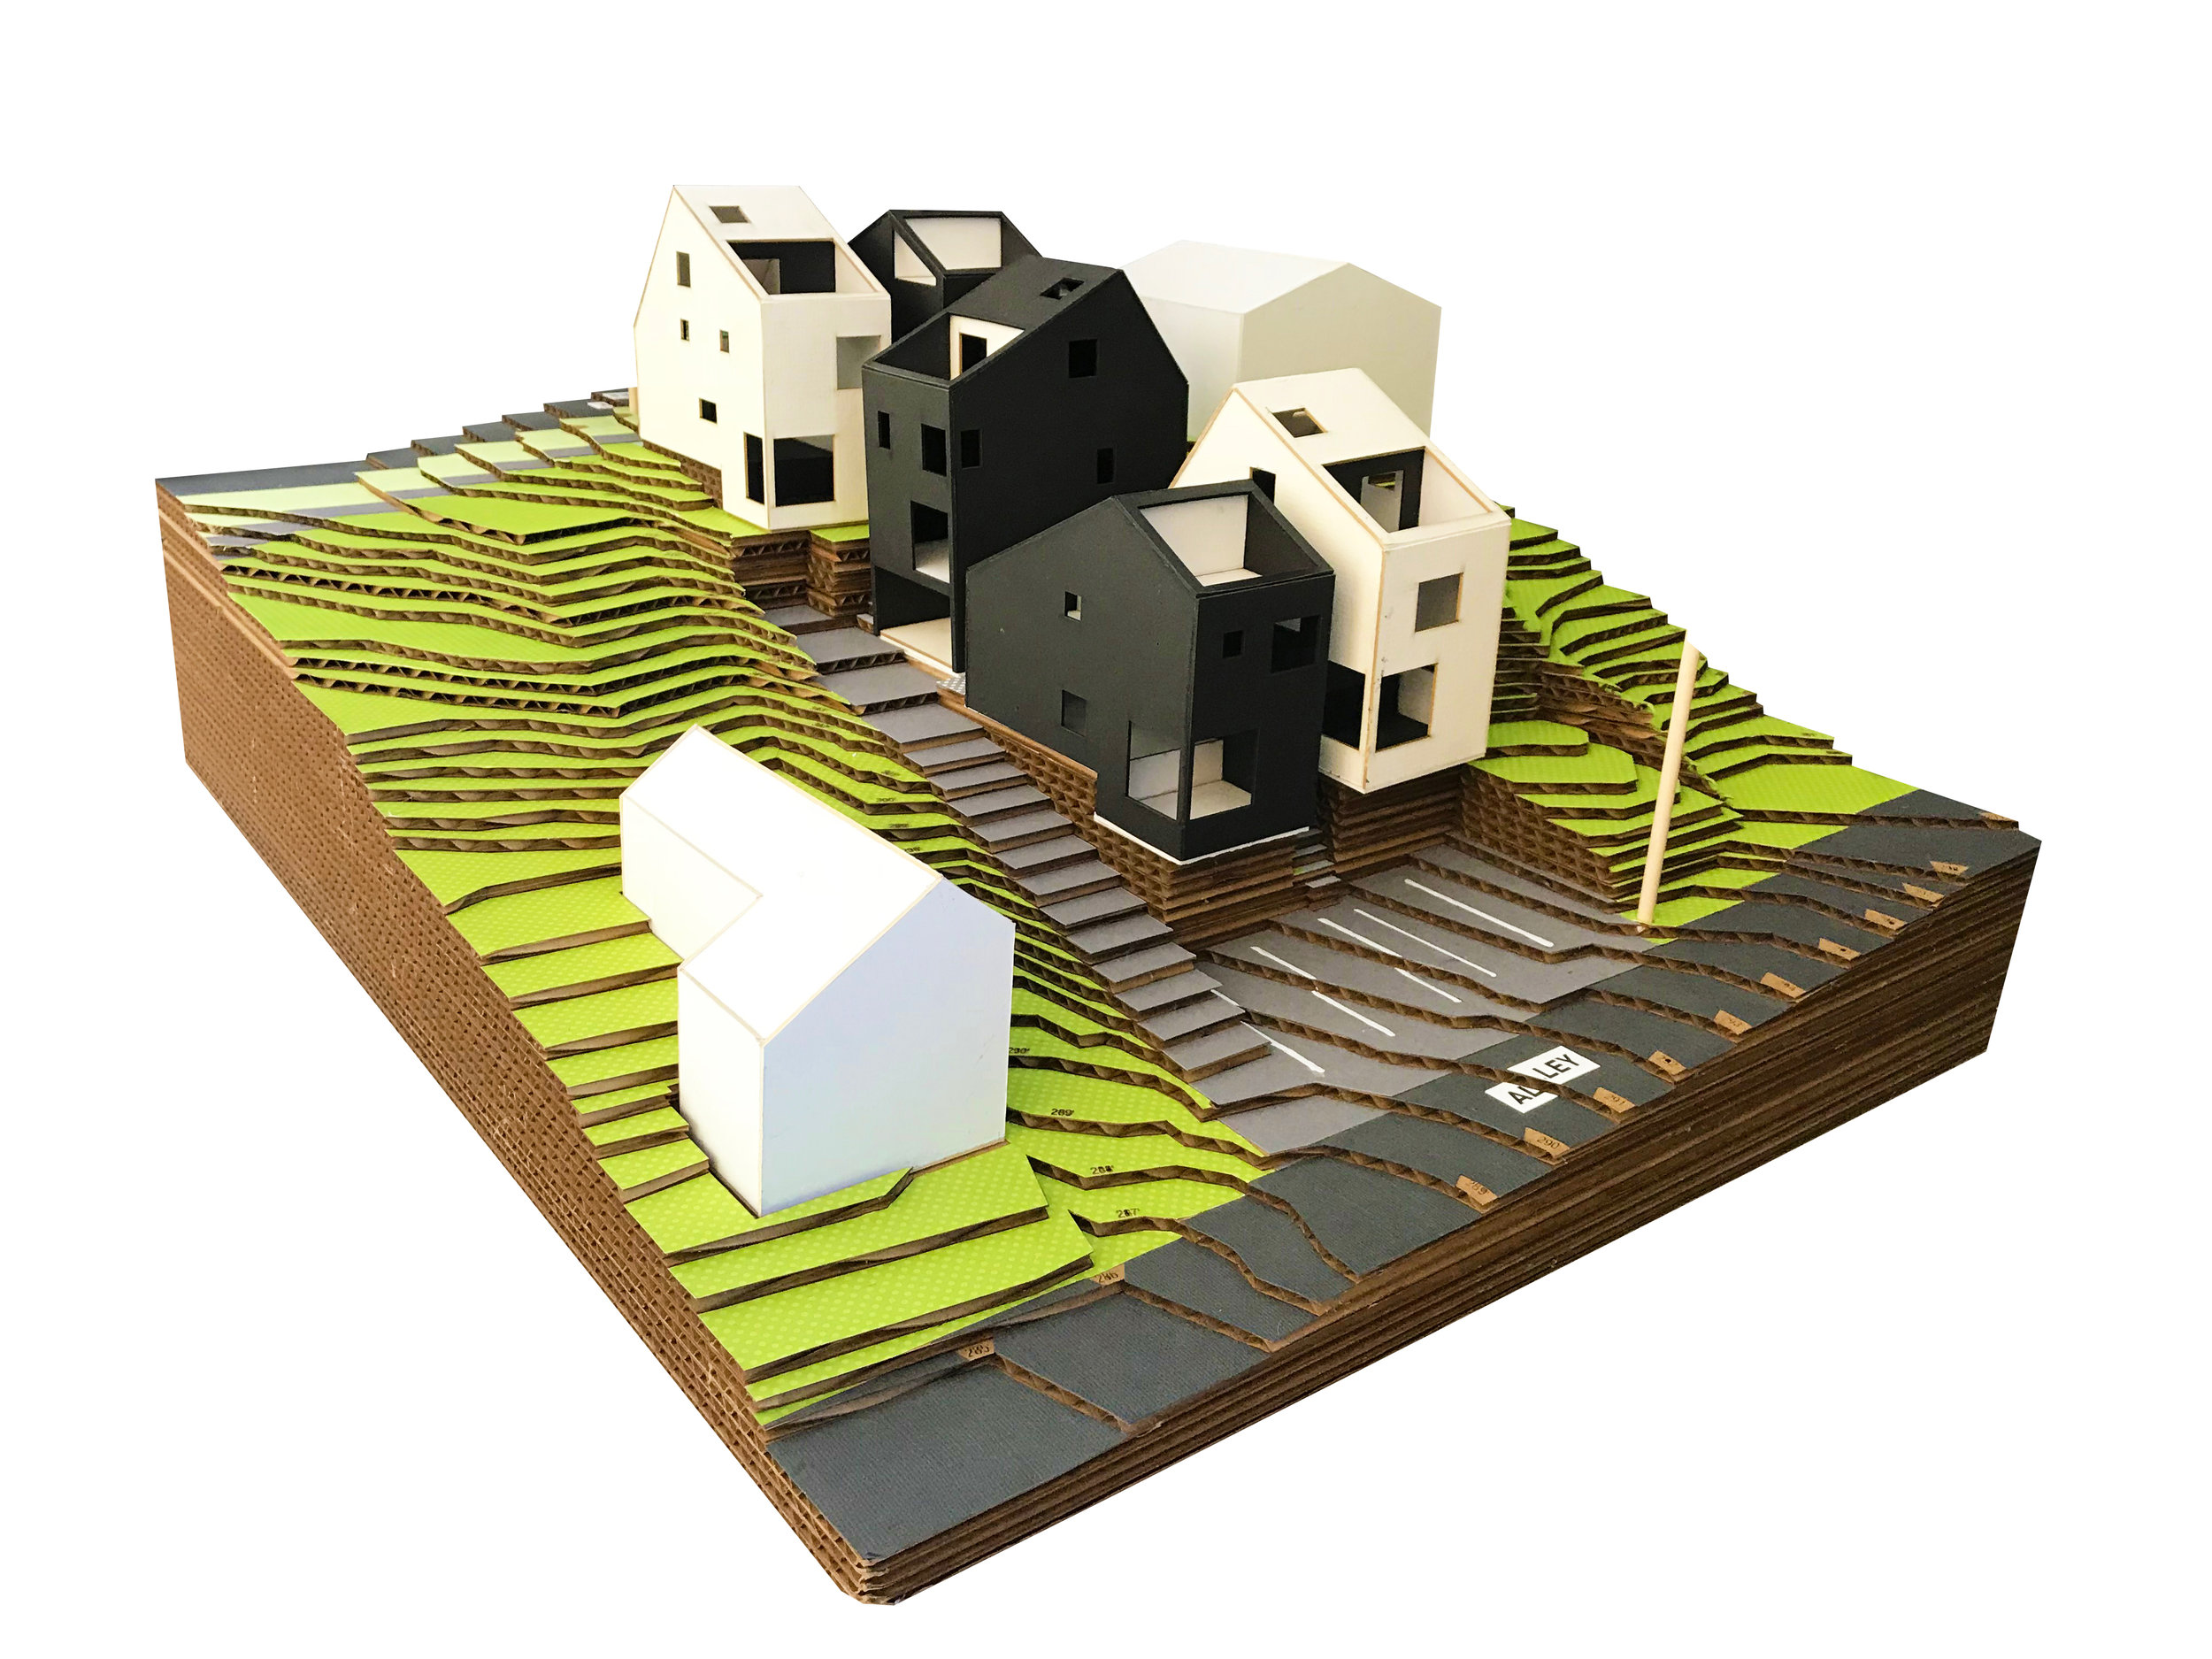 The project model helps to explain the interconnected spaces and geometries to owners, builders and future homeowners